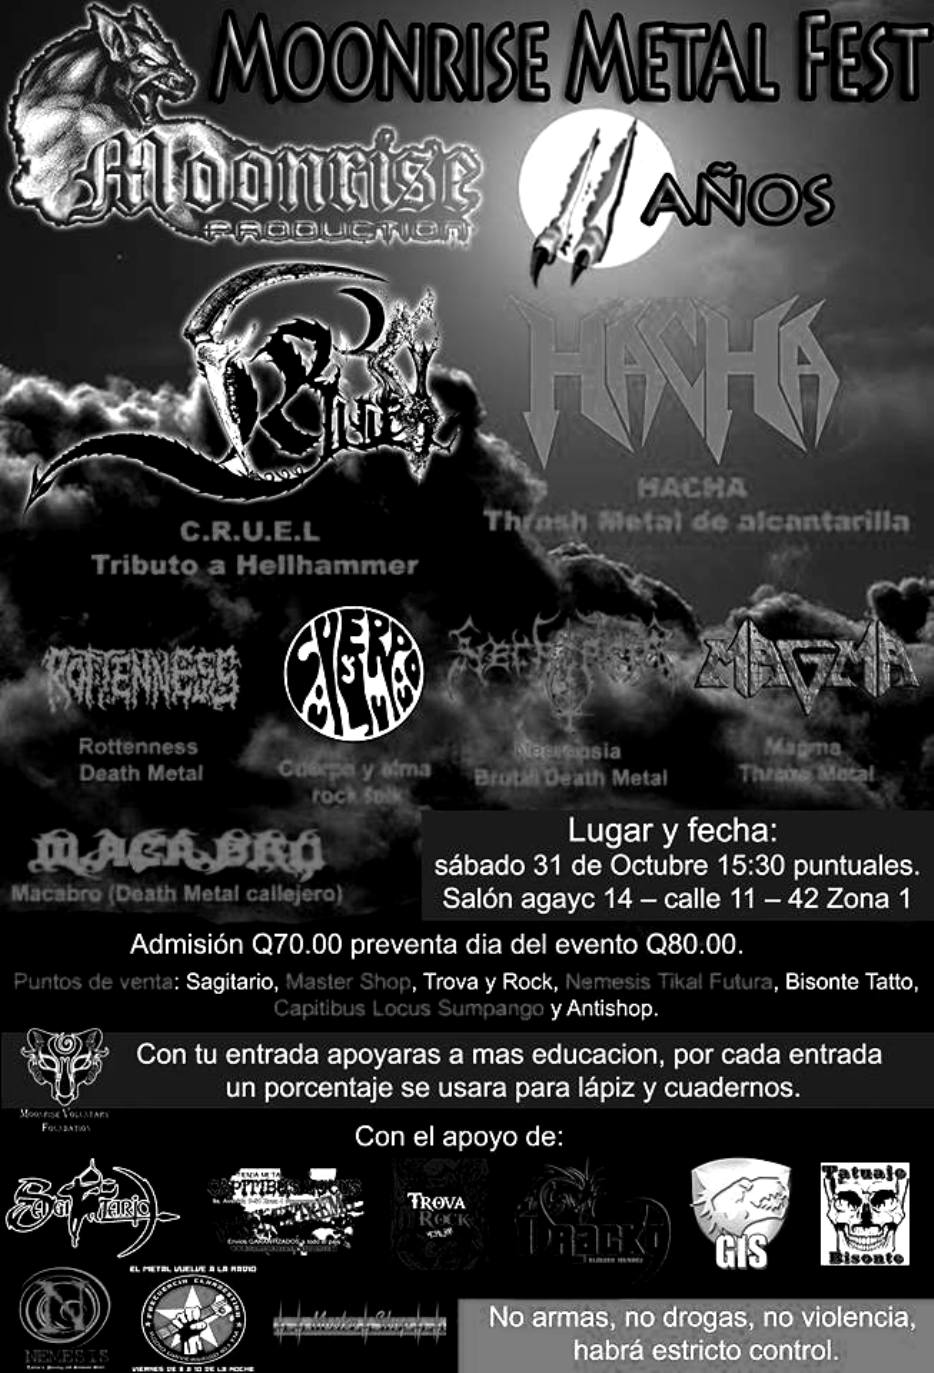 Moonrise Metal Fest 11 Year